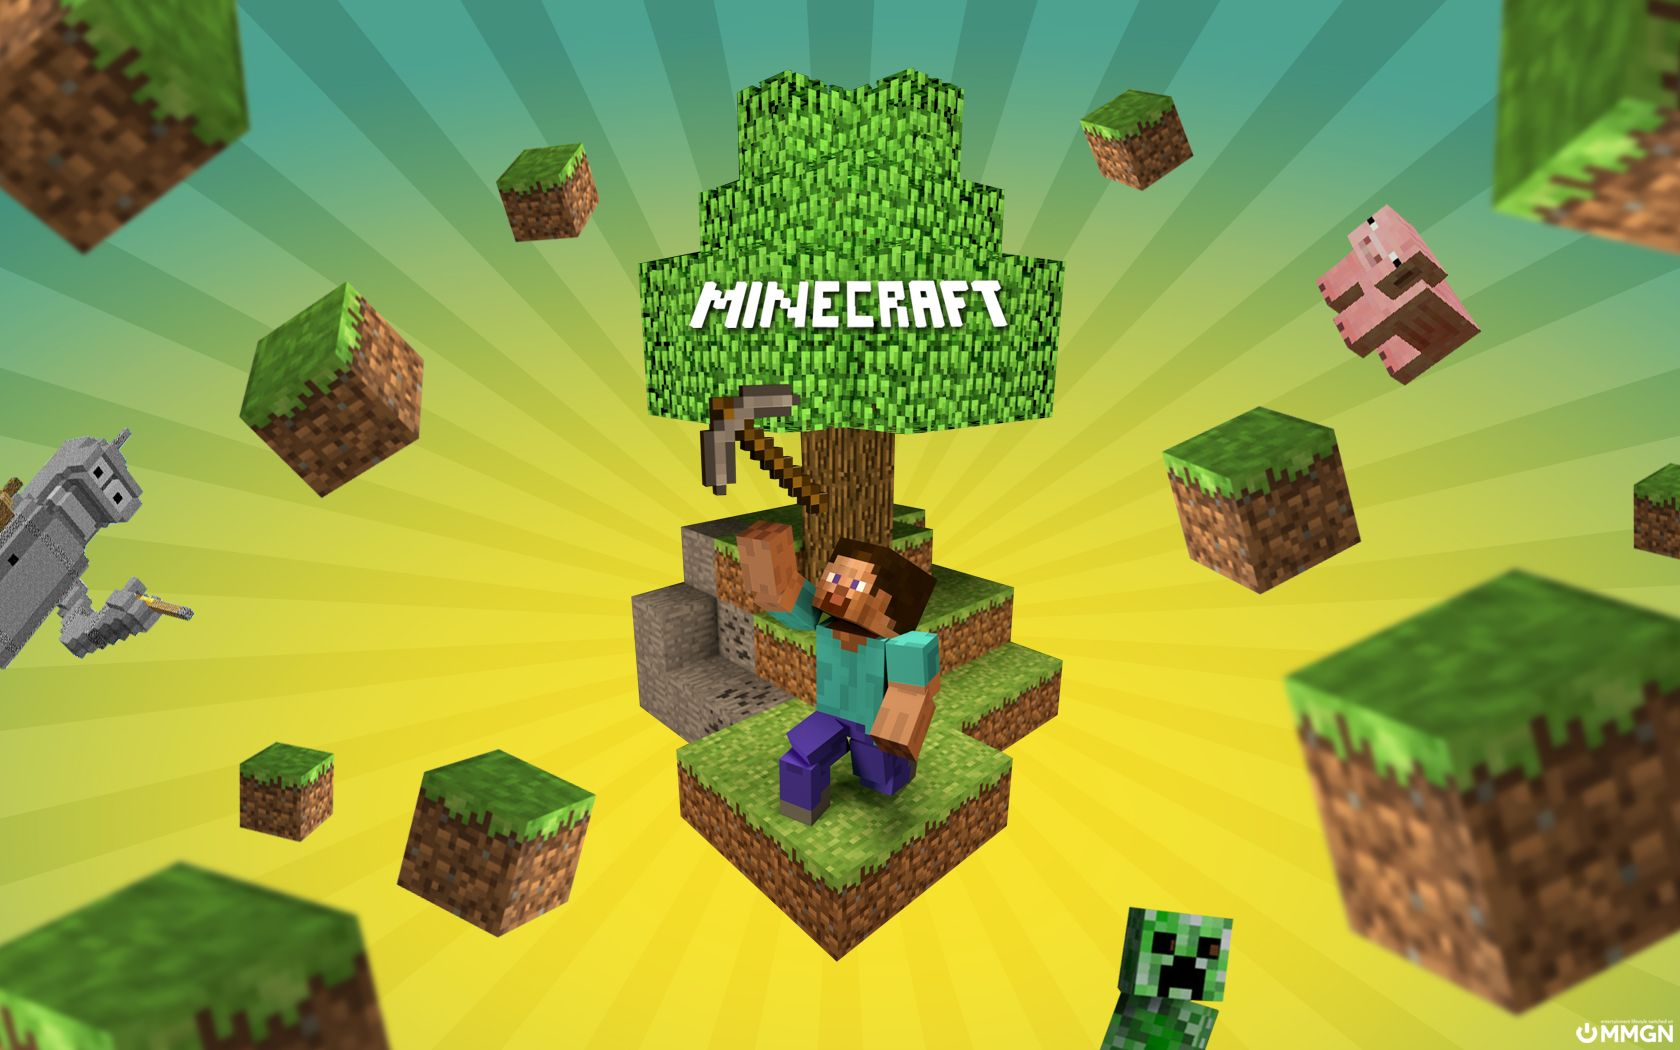 Minecraft Images Minecraft Full Hd Wallpaper With 1680x1050